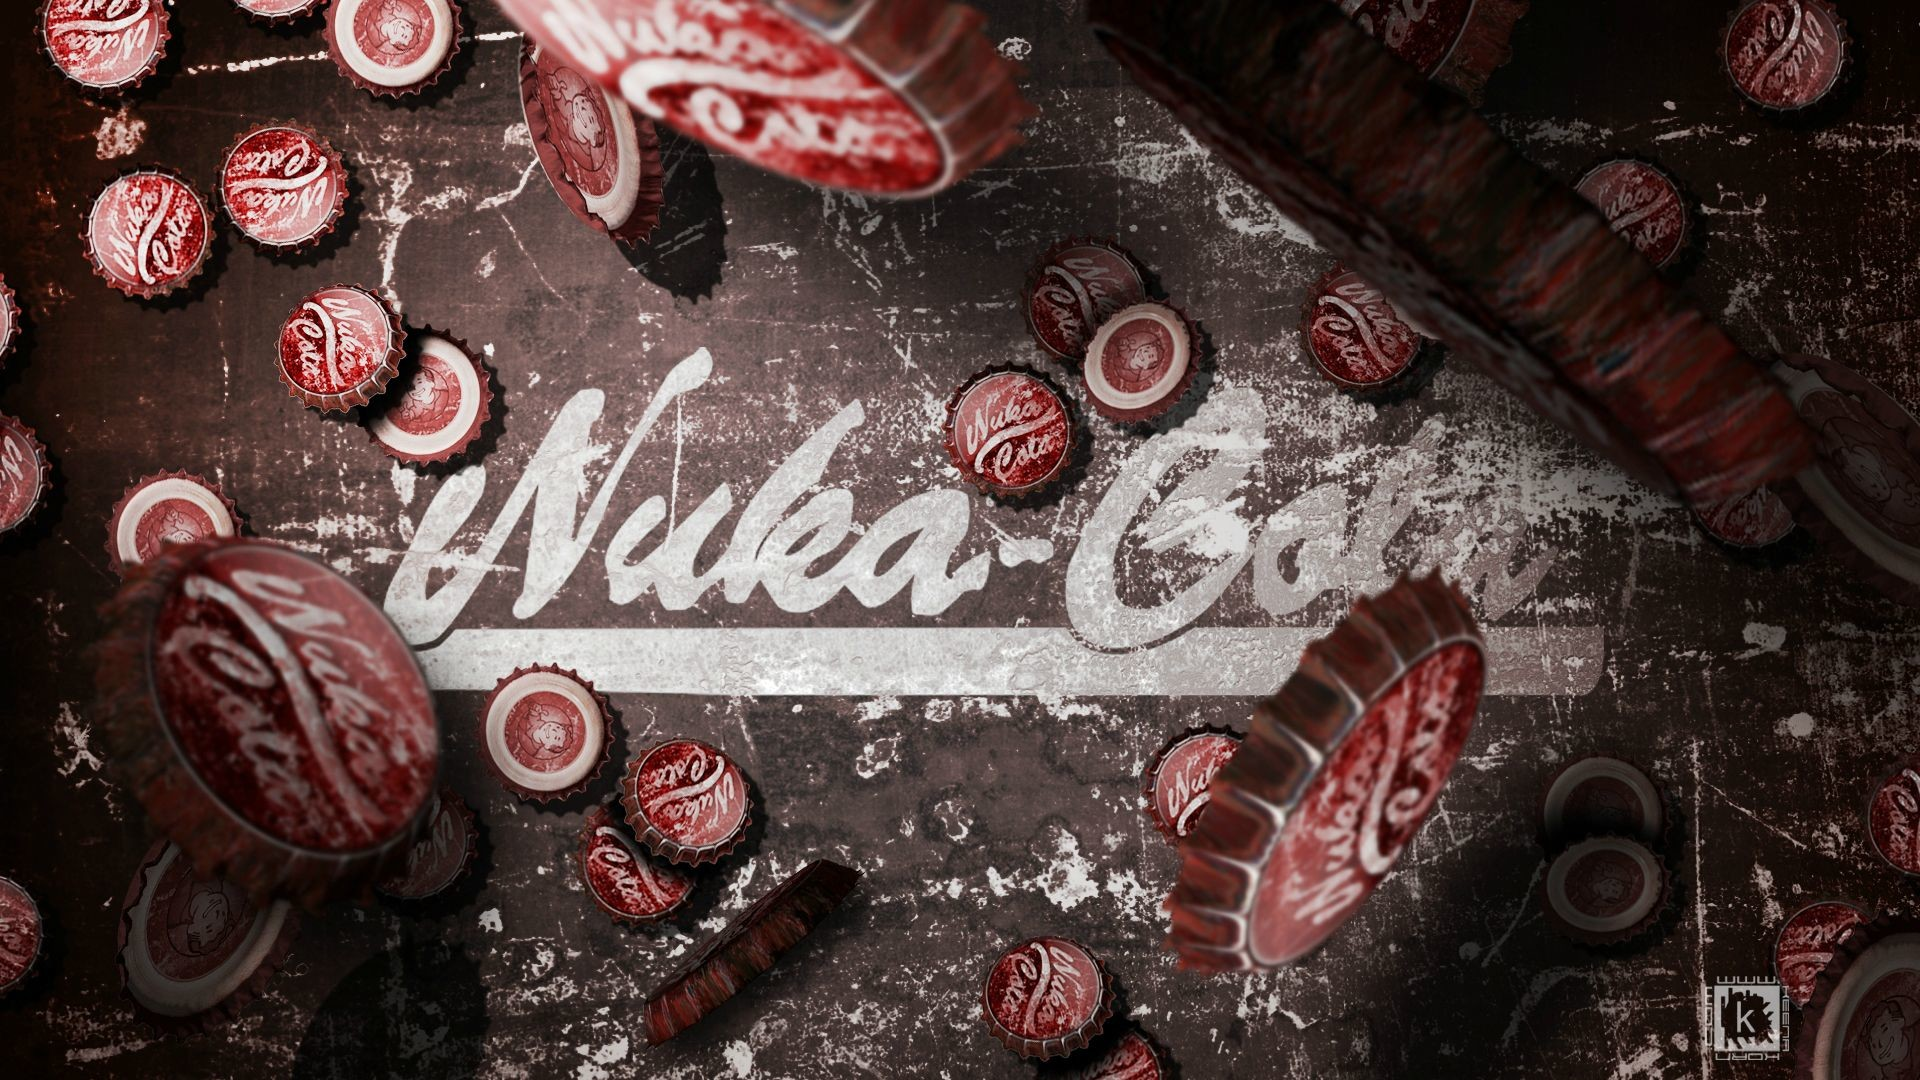 Fallout 3 wallpaper nuka cola 72 pictures 1920x1080 nuka cola wallpaper 1920x1080 thecheapjerseys Gallery